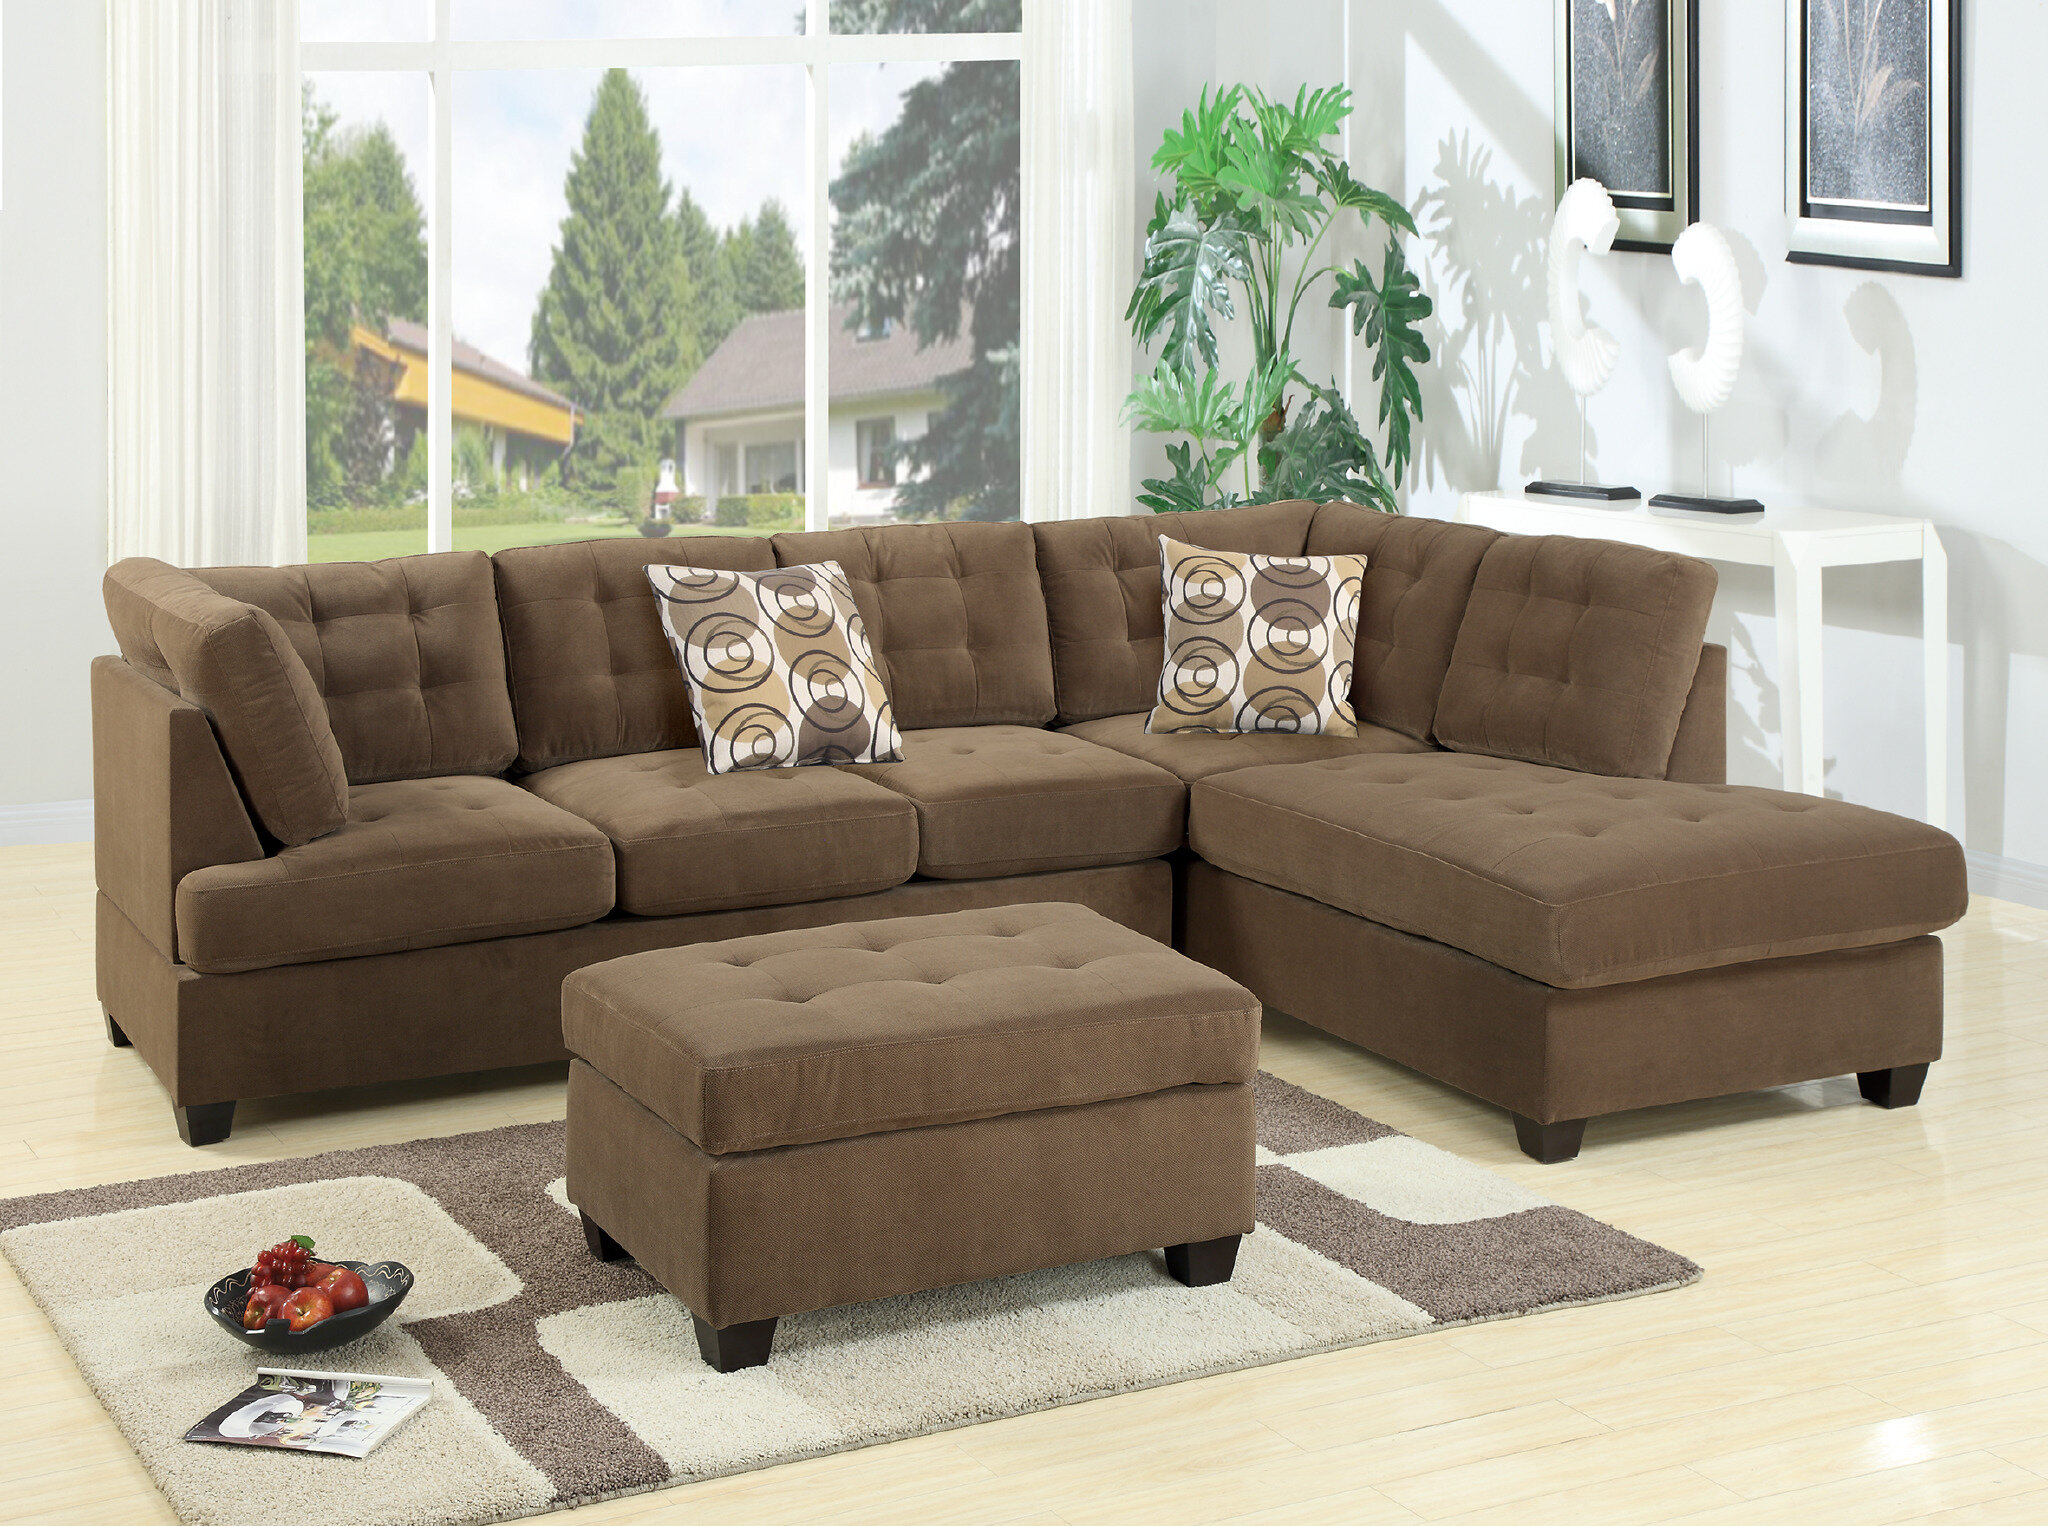 Red Barrel Studio Tomita Right Hand Facing Modular Sectional With